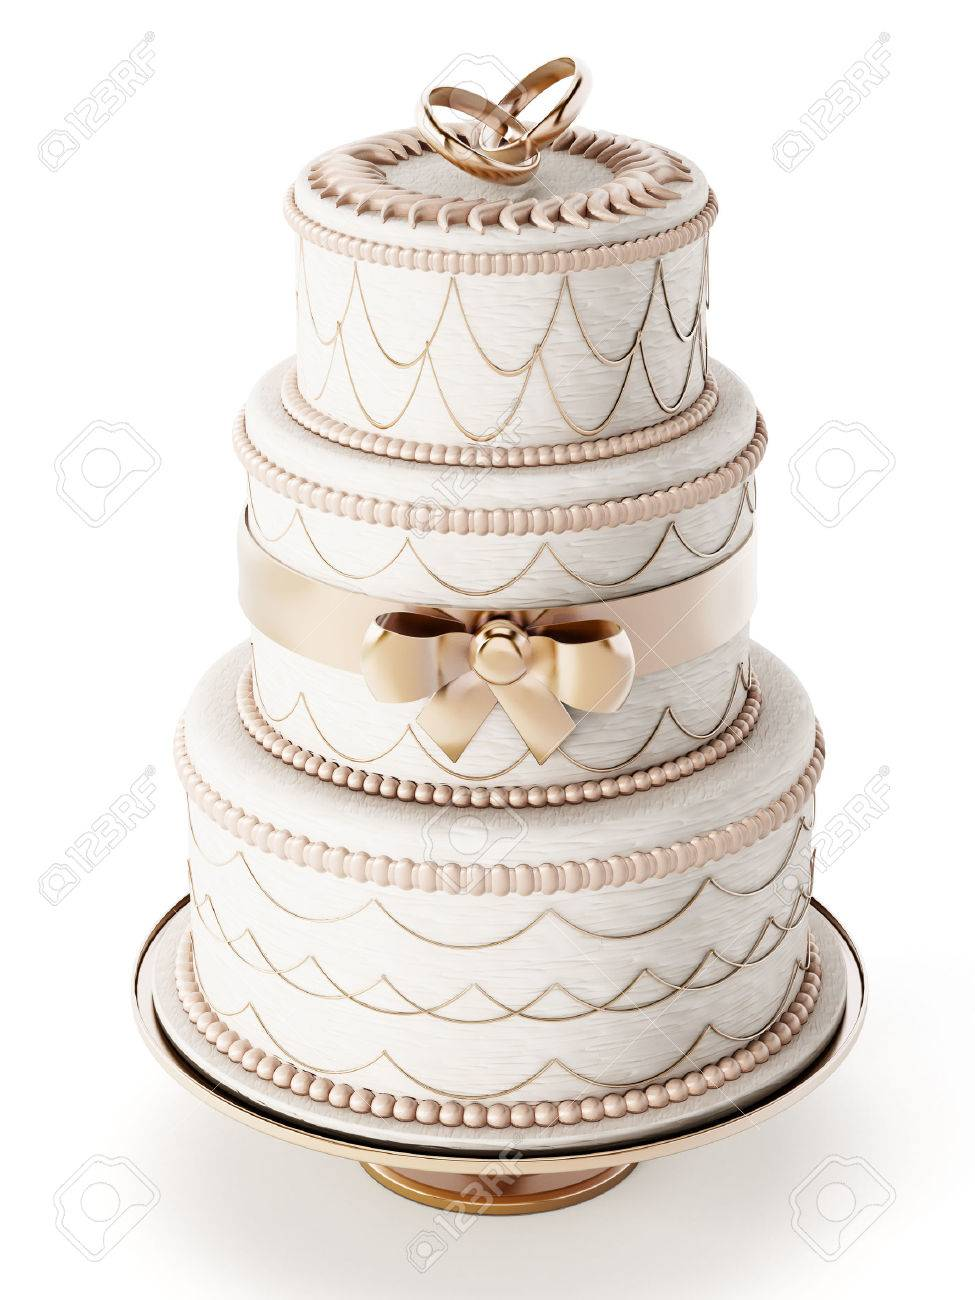 Wedding cake isolated on white background Stock Photo - 44709491